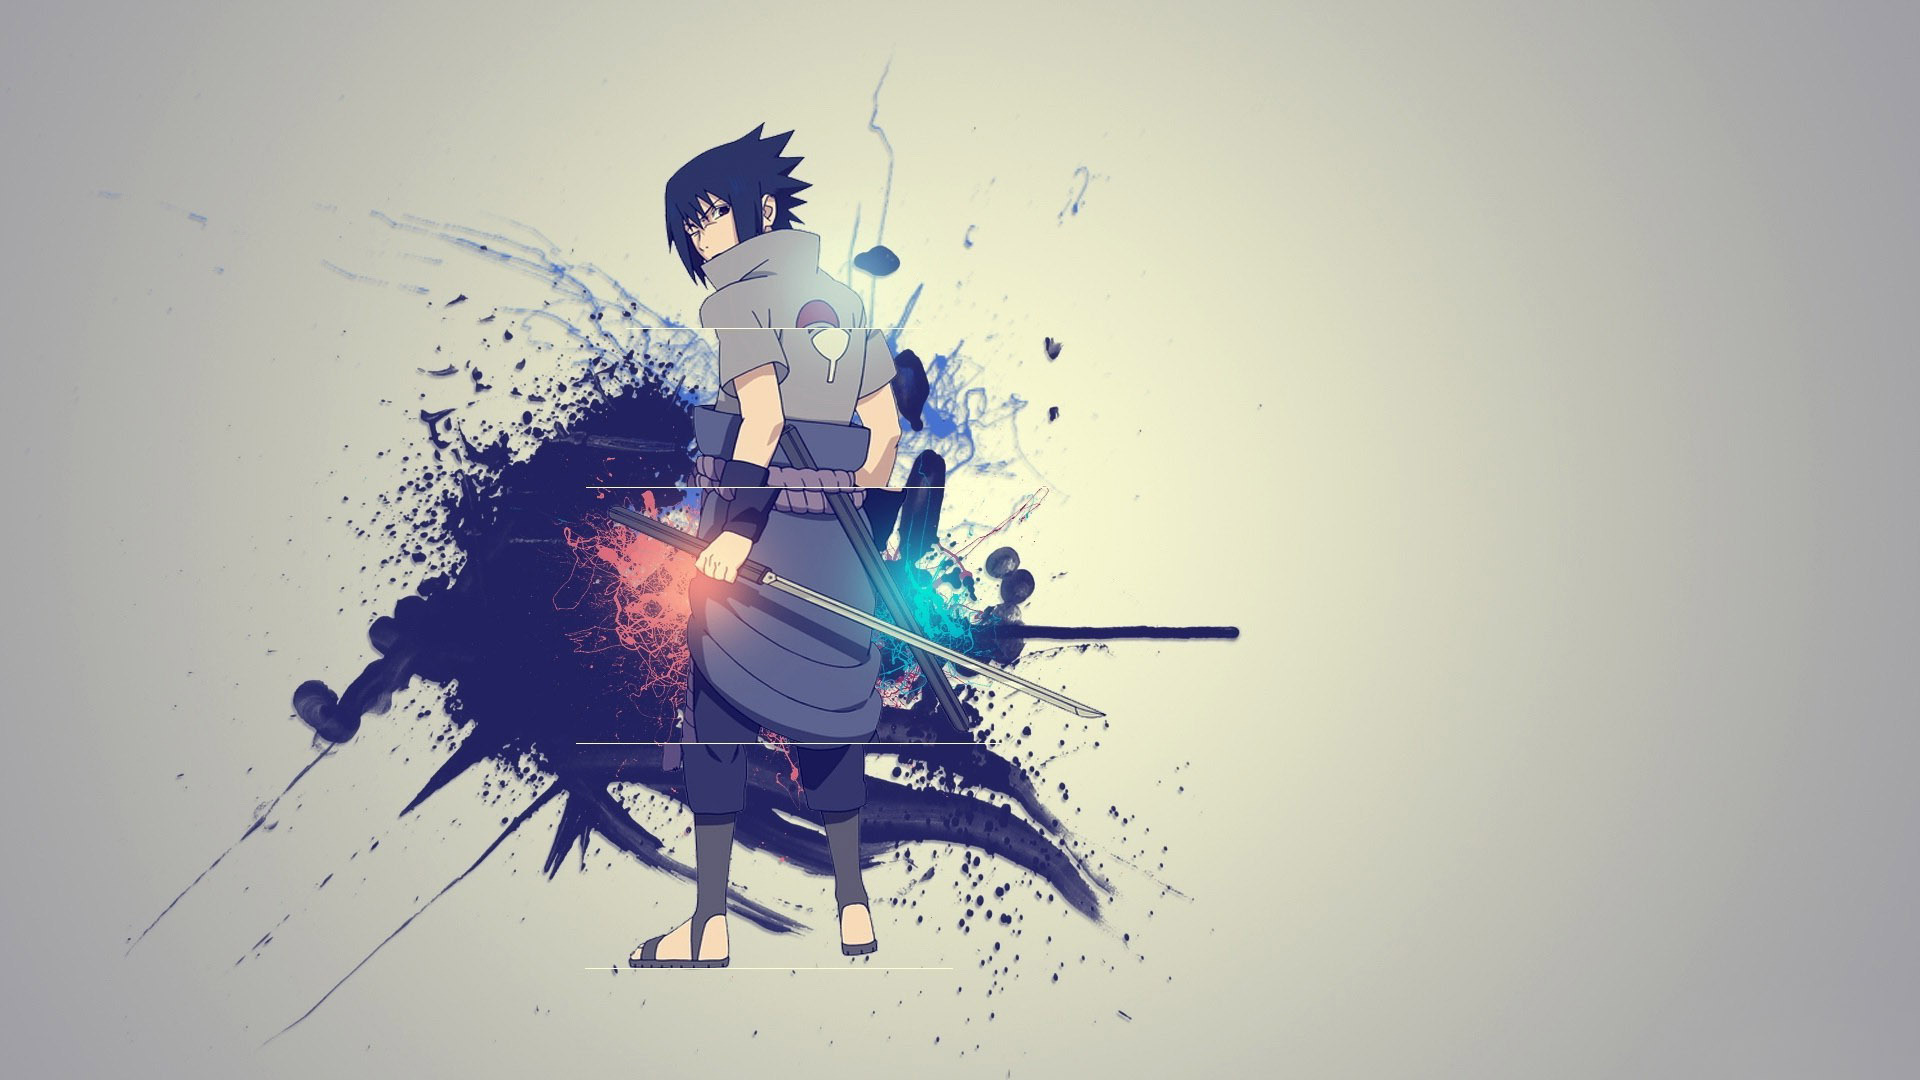 Sasuke wallpapers hd pixelstalk uchiha sasuke wallpapers hd desktop sasuke wallpapers hd pixelstalk uchiha sasuke wallpapers hd desktop backgrounds images and pictures 1920x1080 voltagebd Image collections